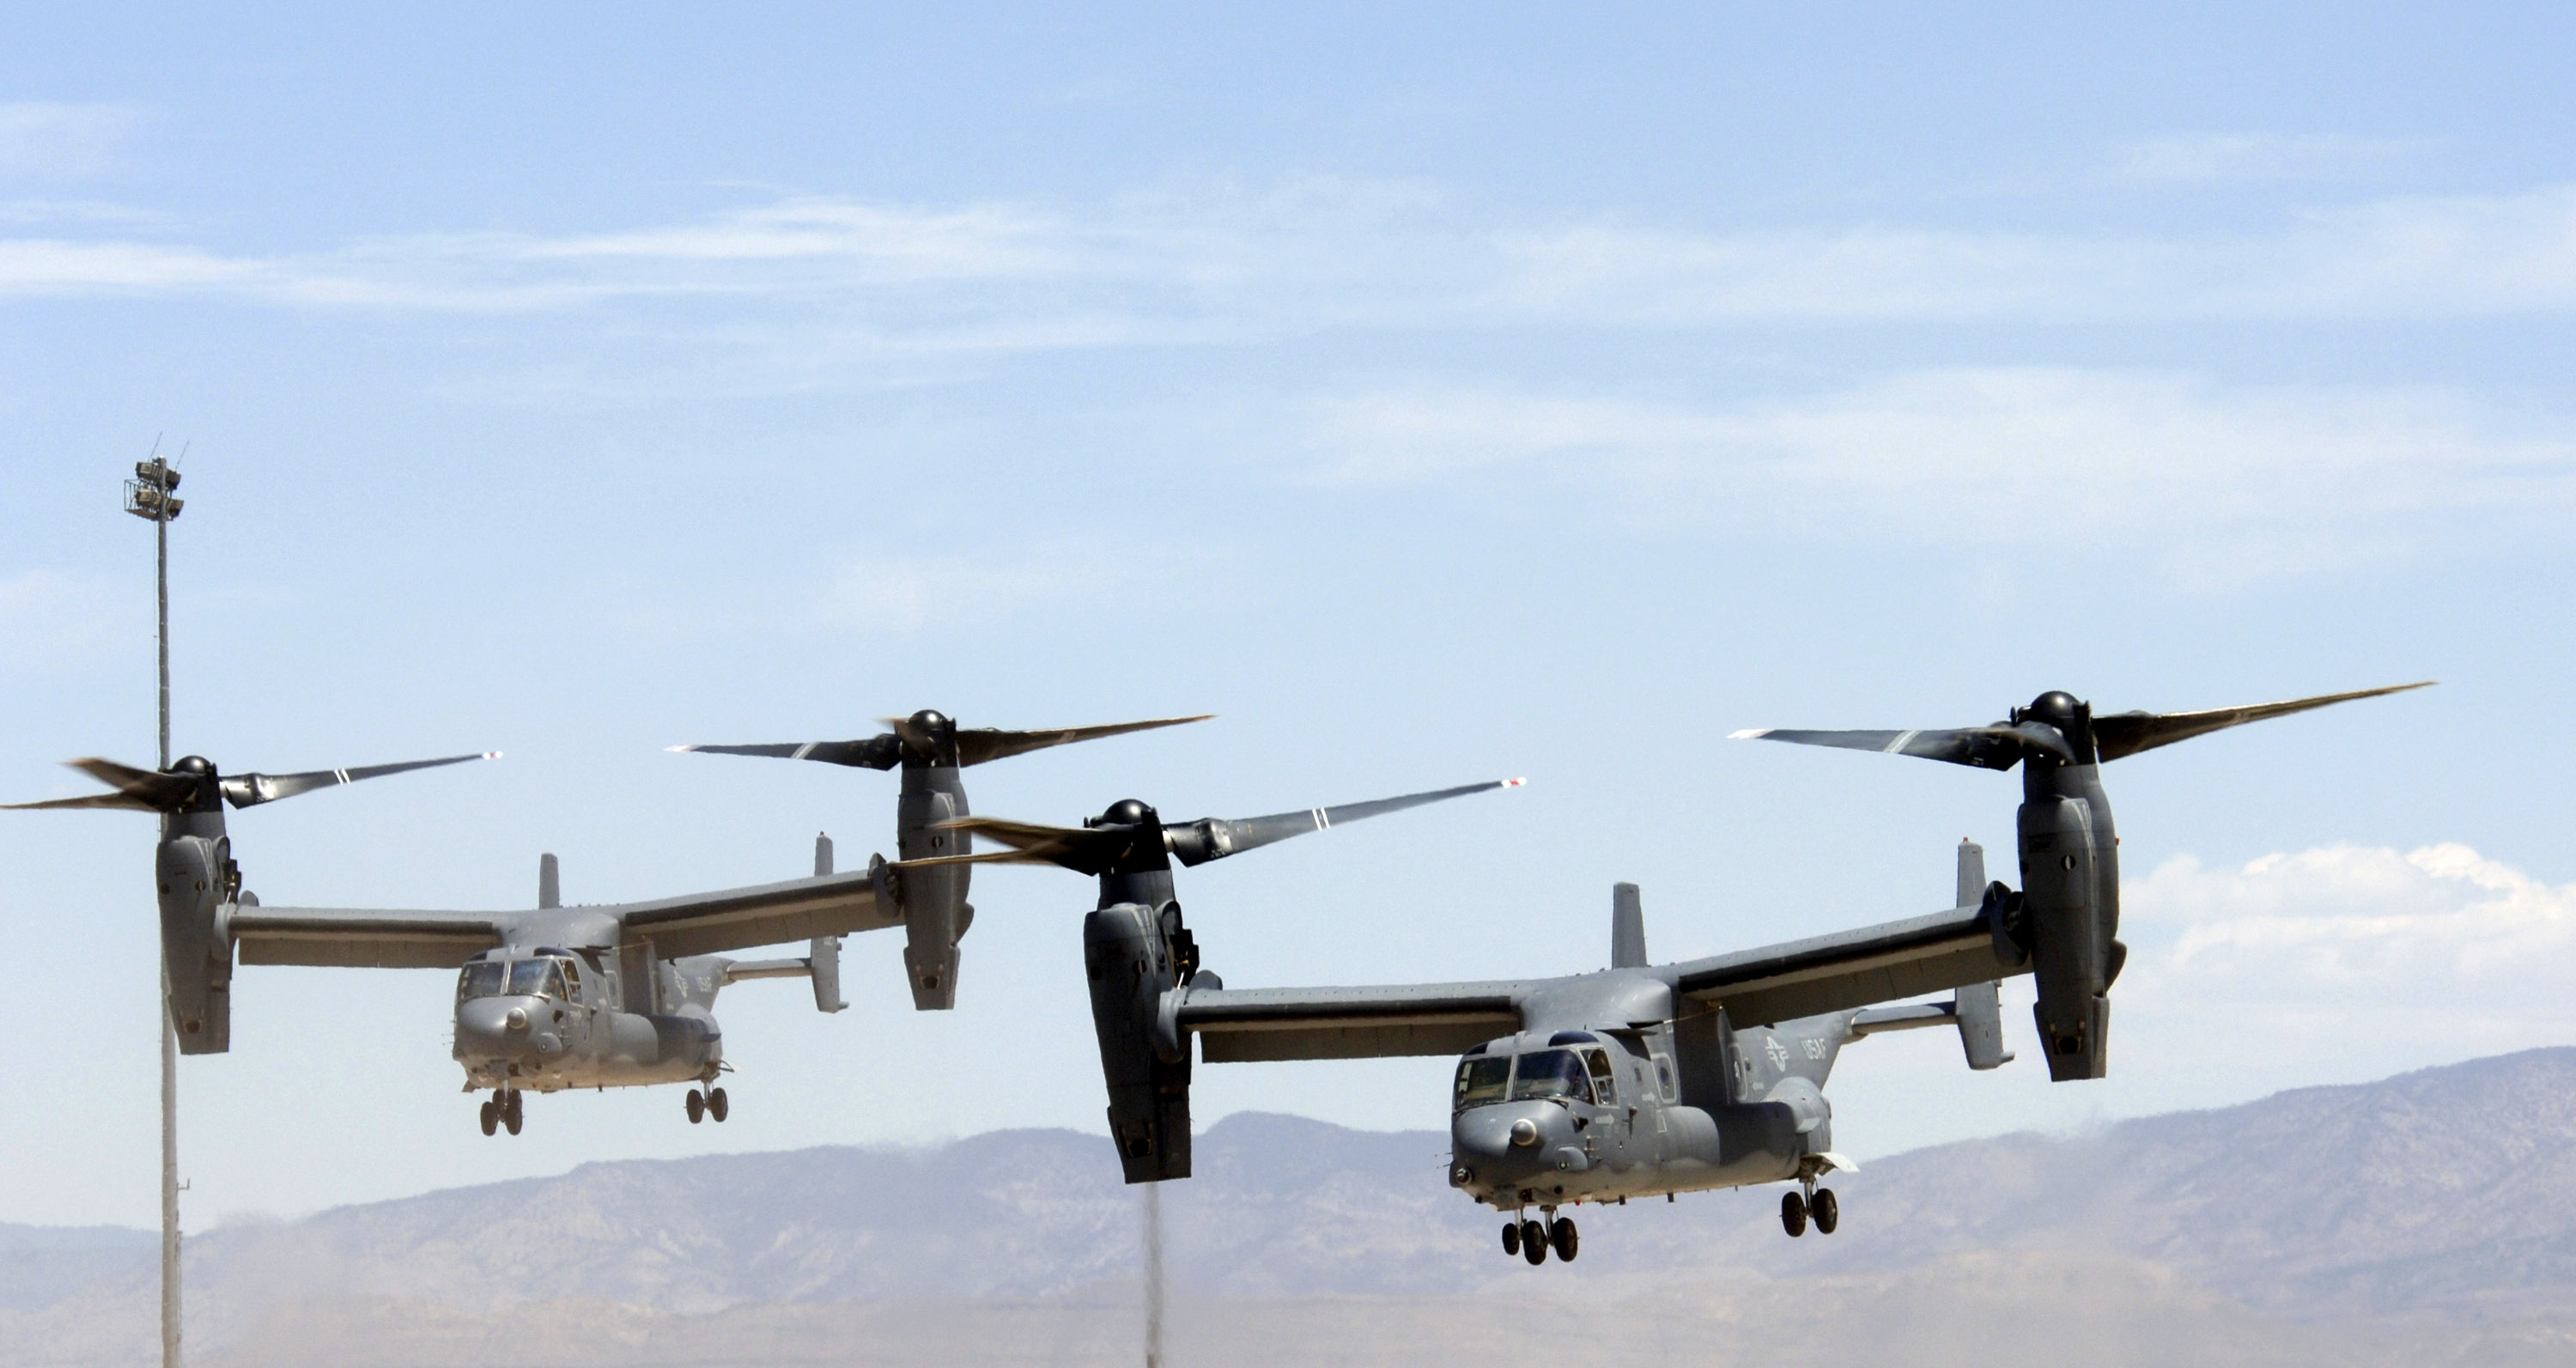 file cv-22 formation jpeg